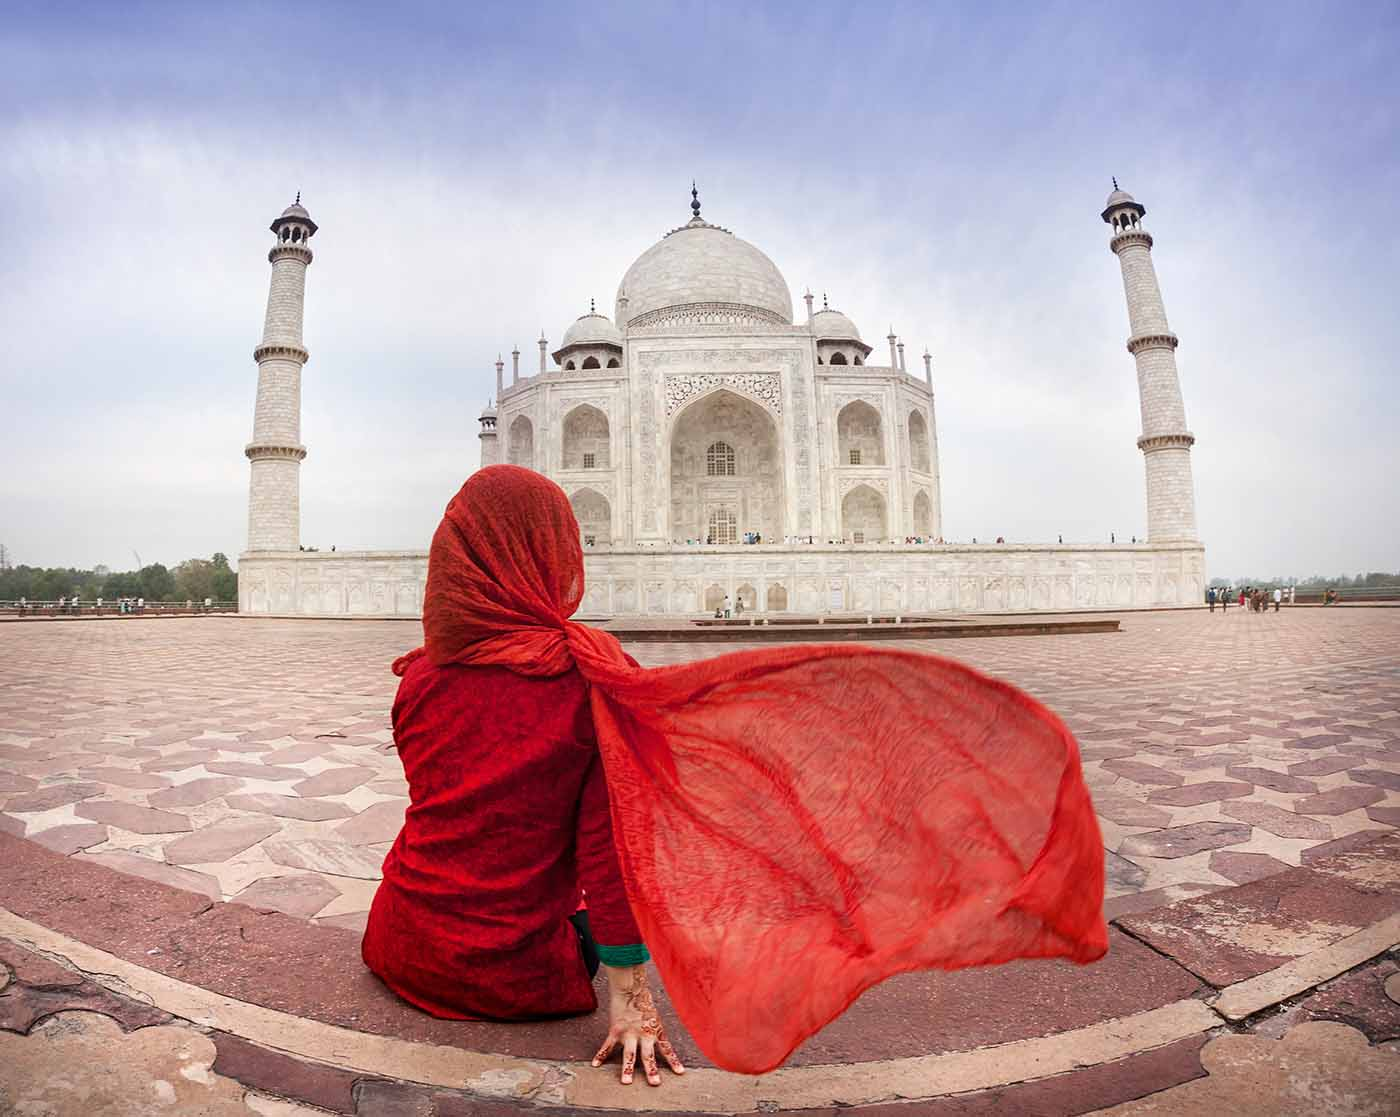 Woman in red costume with flattering scarf sitting near Taj Mahal in Agra, Uttar Pradesh, India